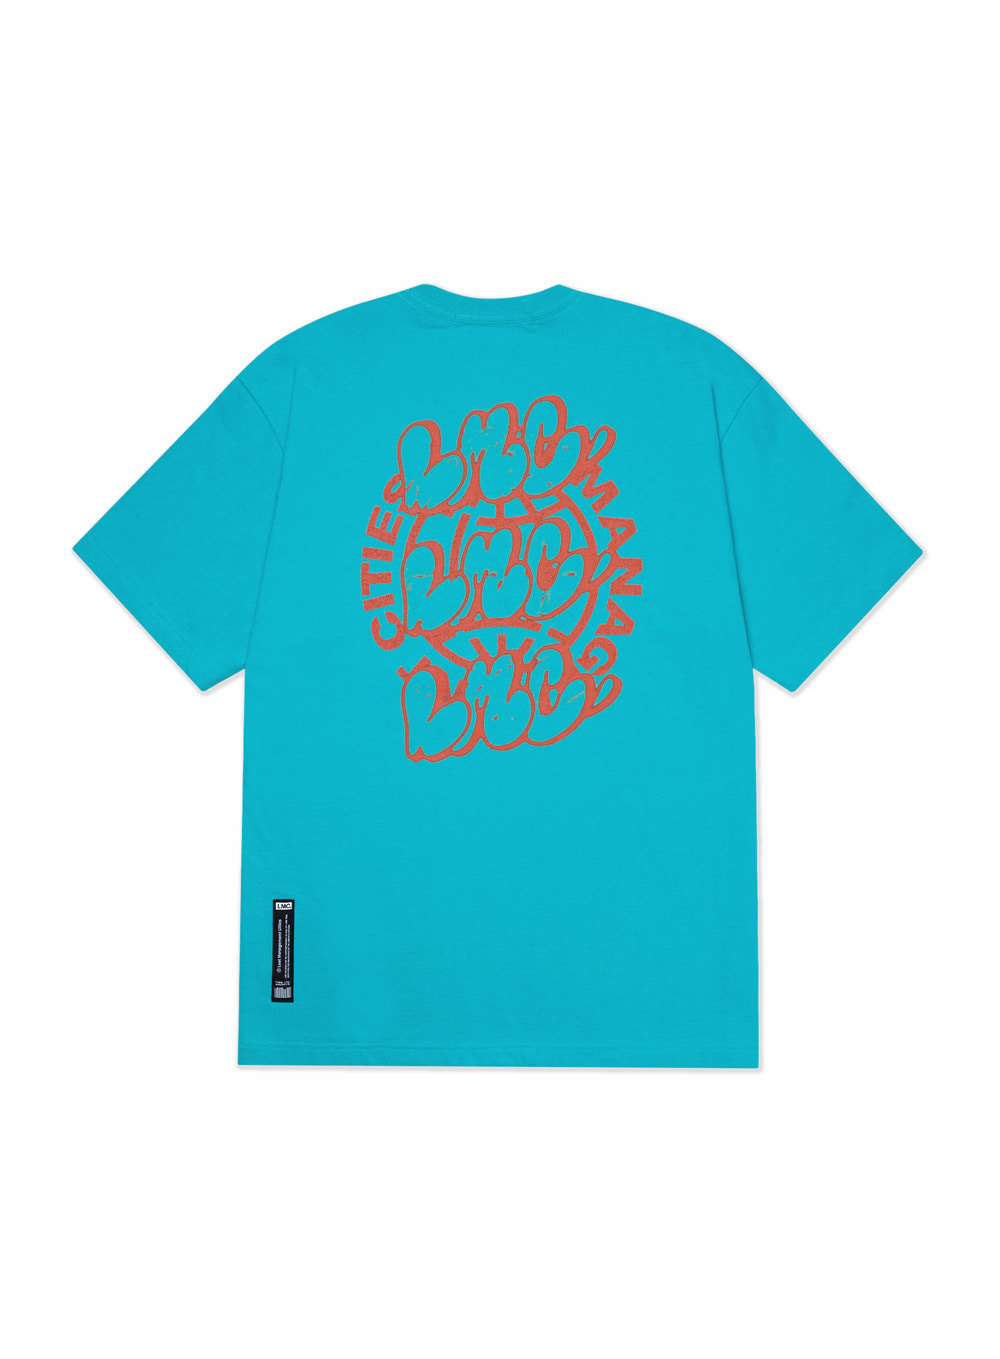 LMC GRAFFITI BL TEE mint blue